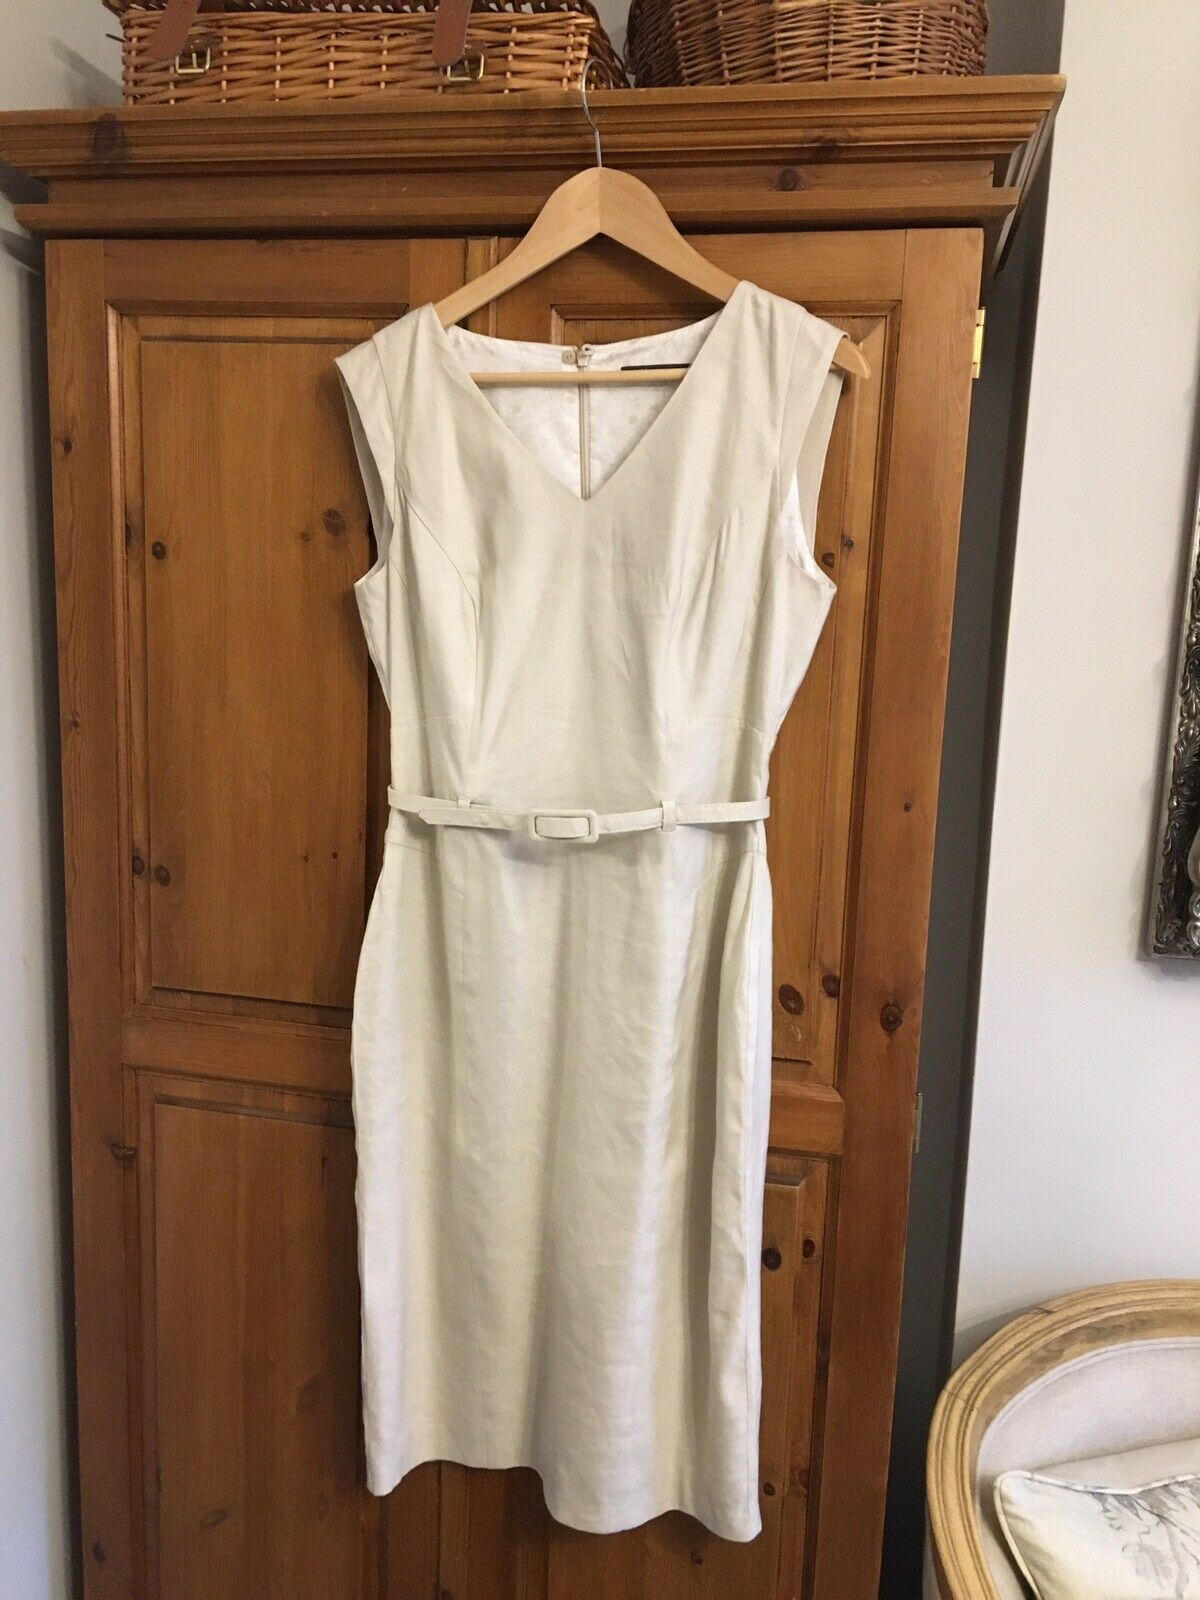 M&S Lined Linen Dress Fitted Style With Belt UK 10 Beige Colour